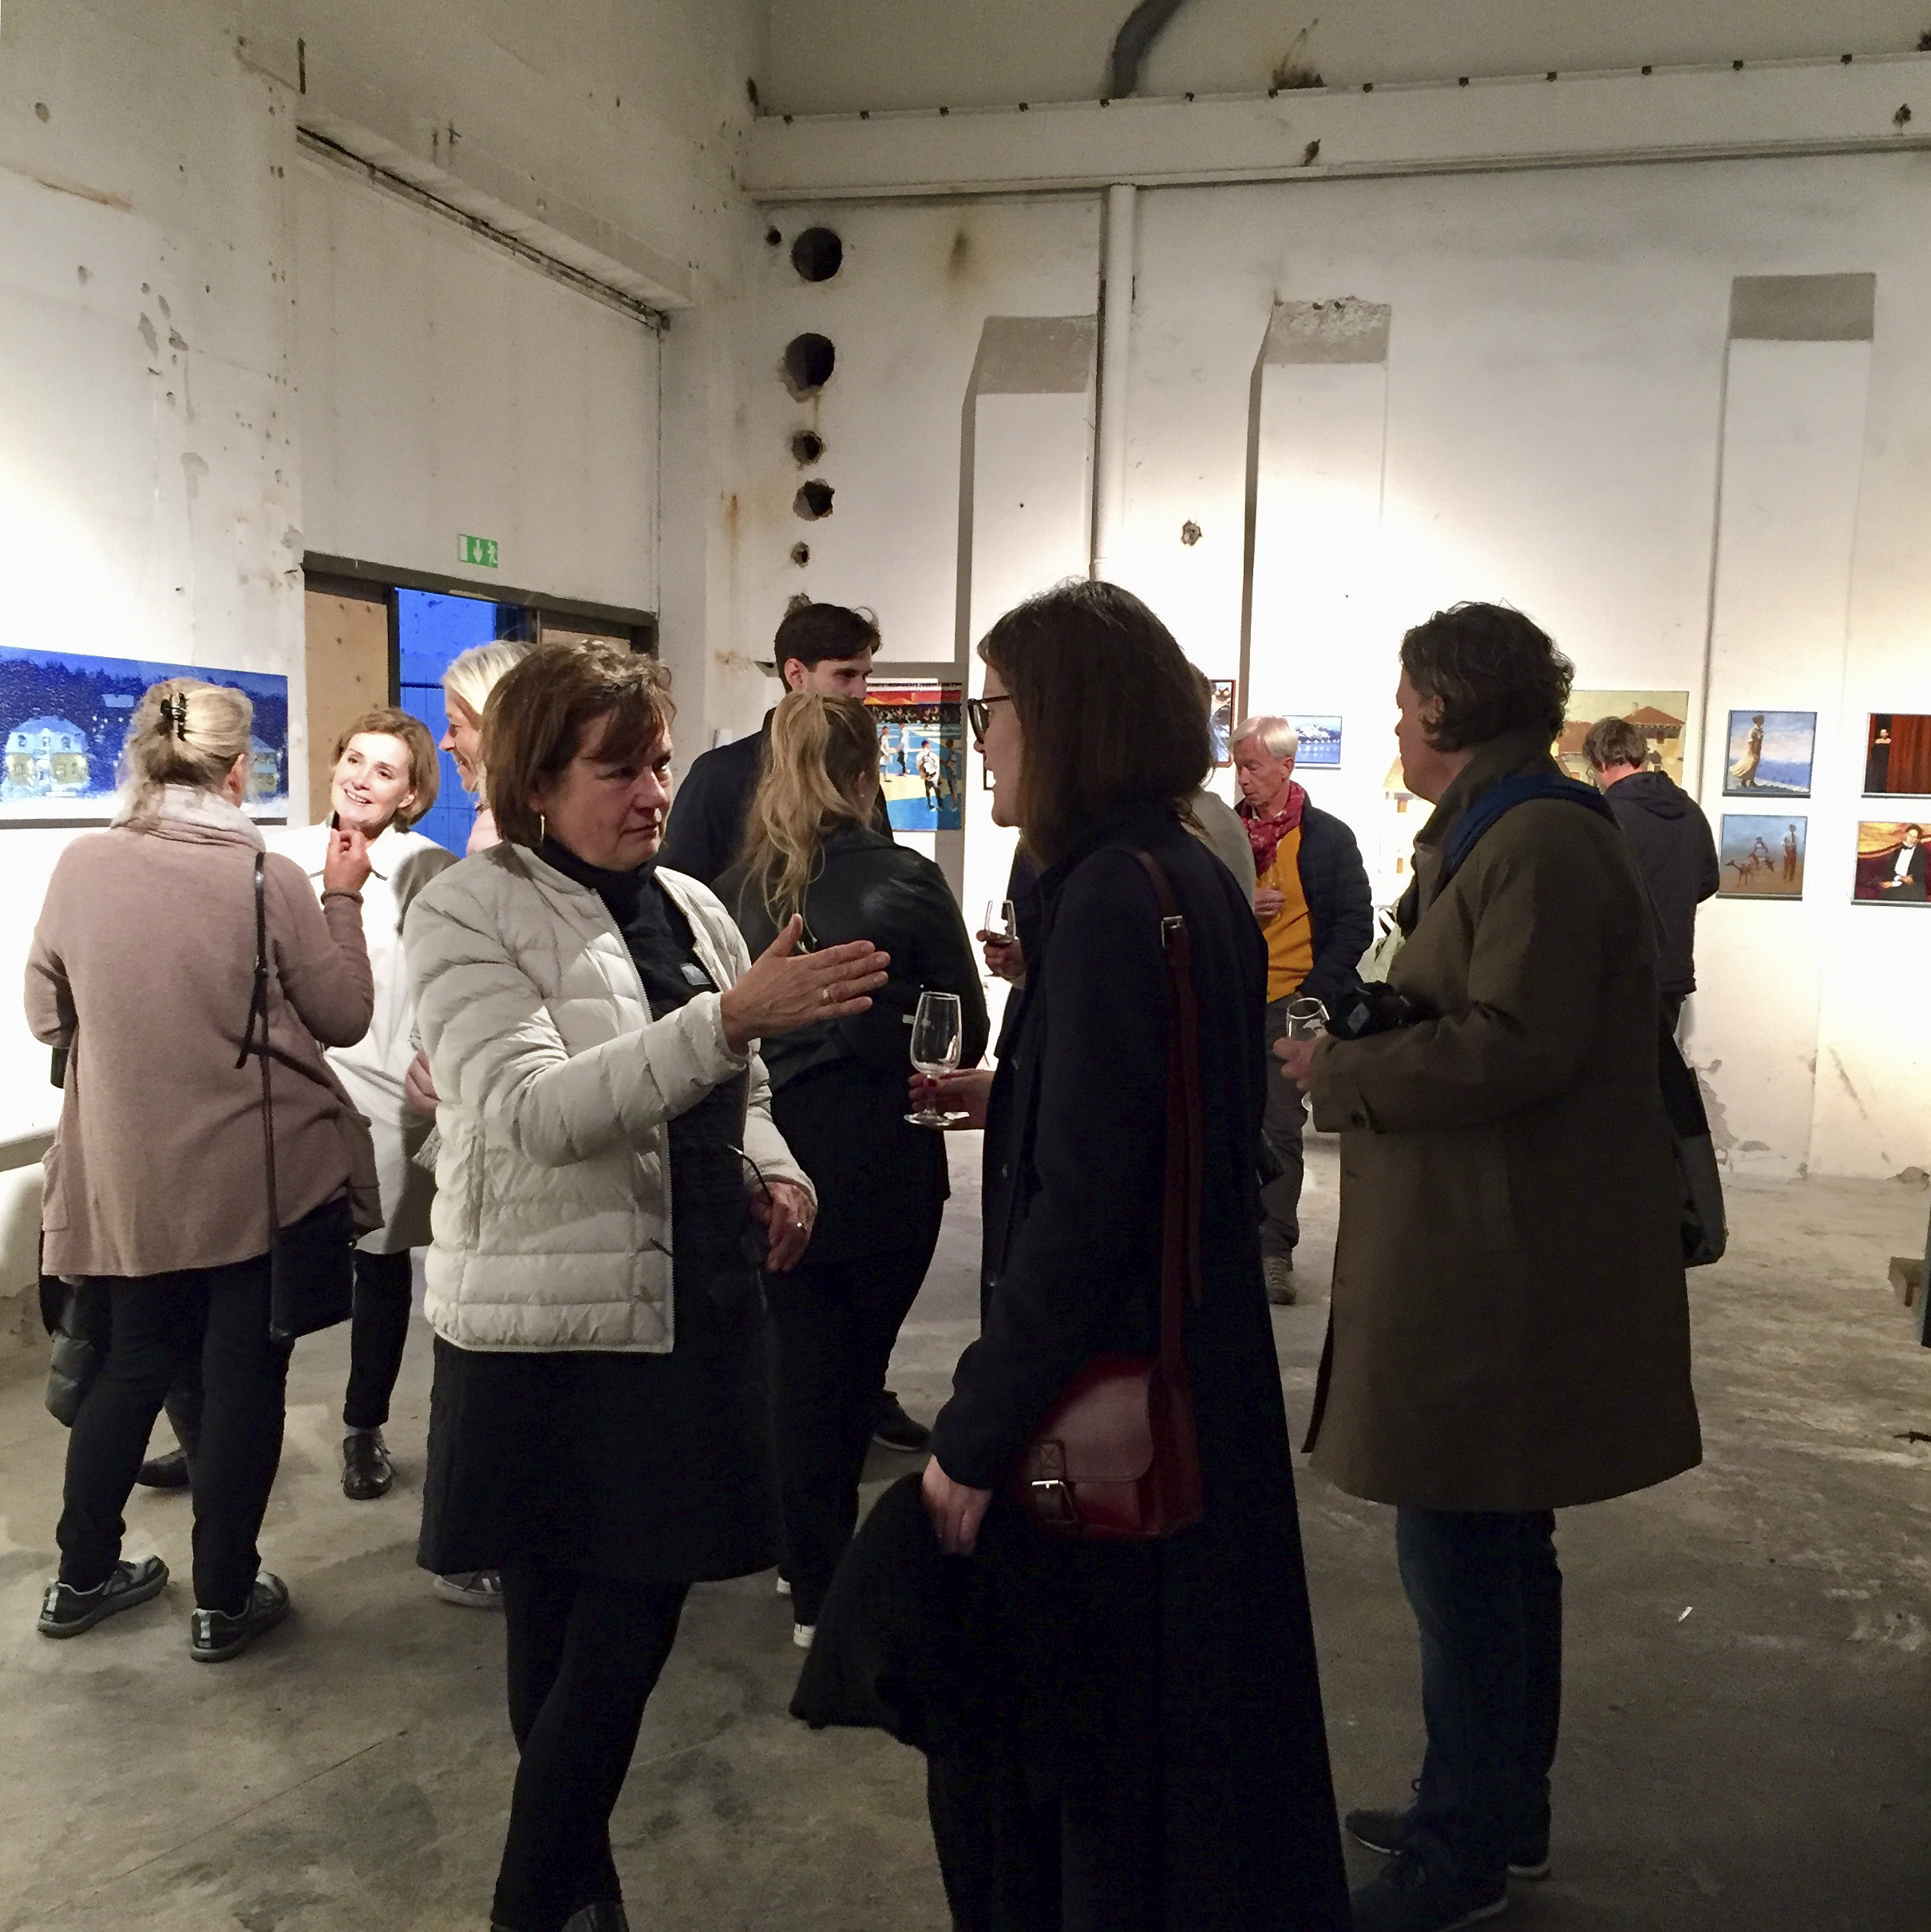 Dalénum_Vernissage_01.jpg